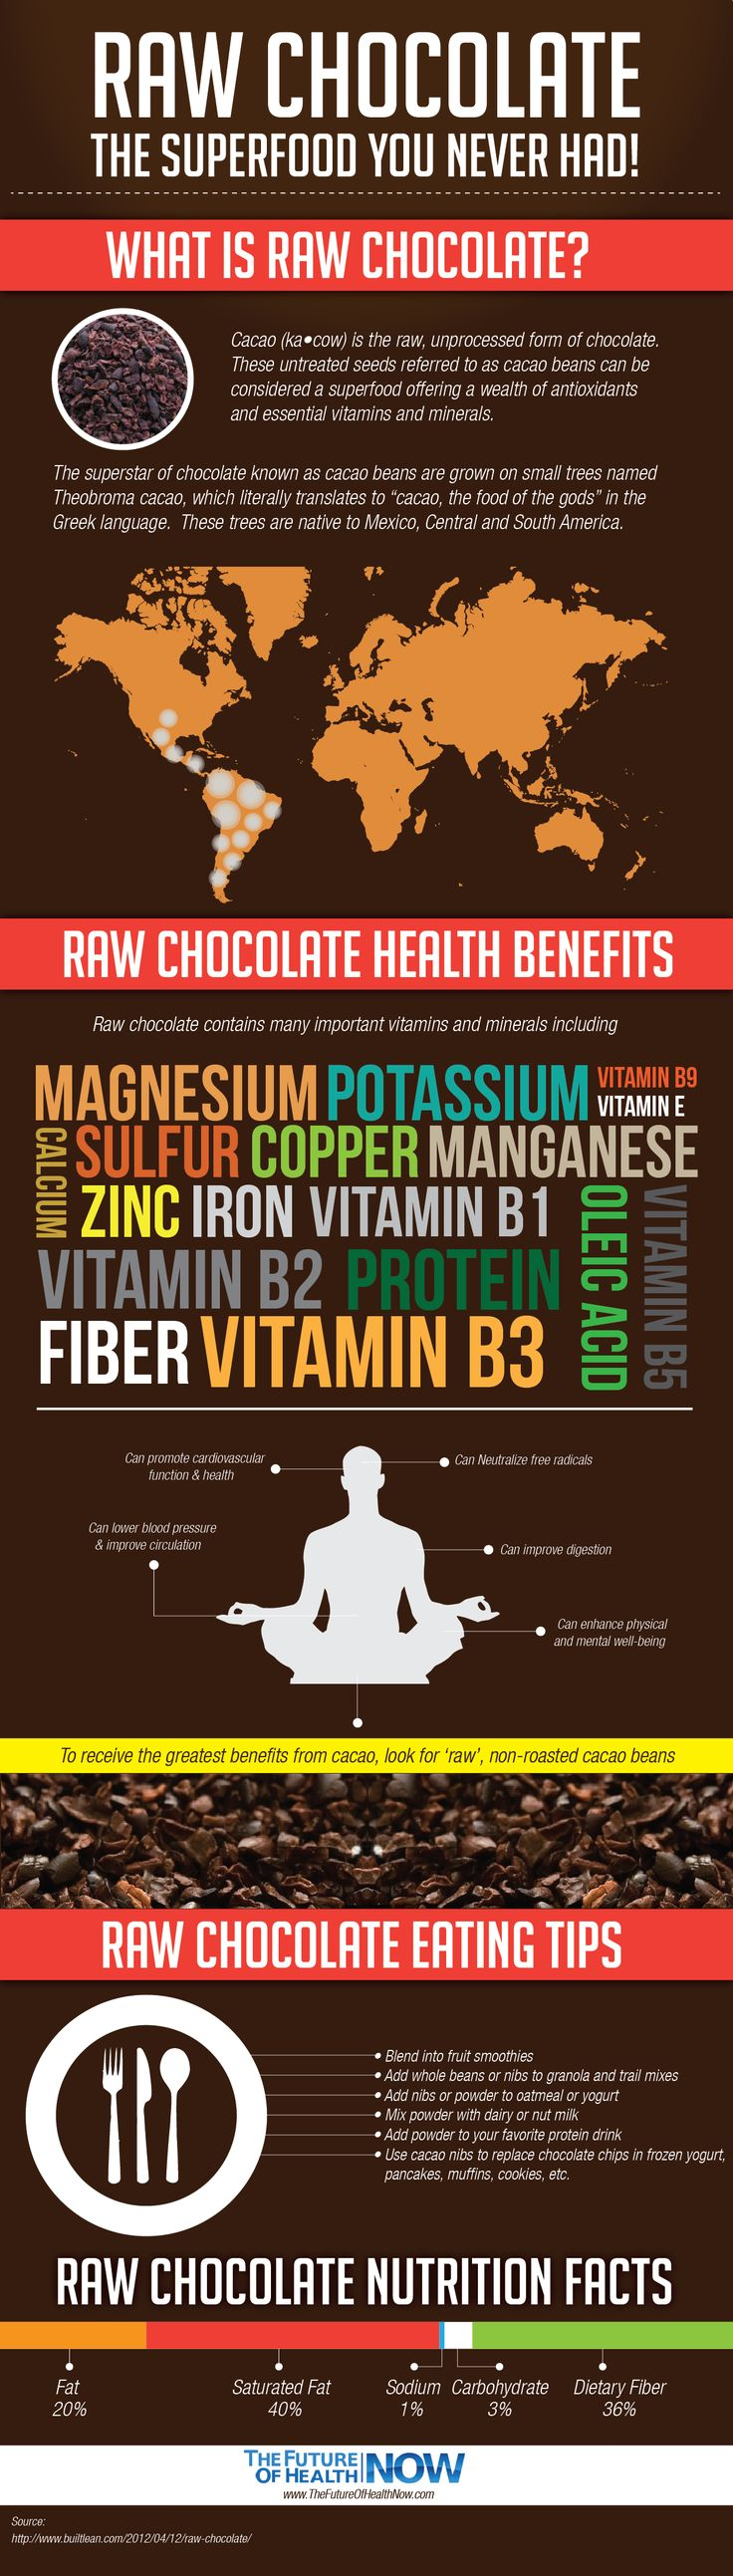 7 best Health benefits of chocolate images on Pinterest | Health ...